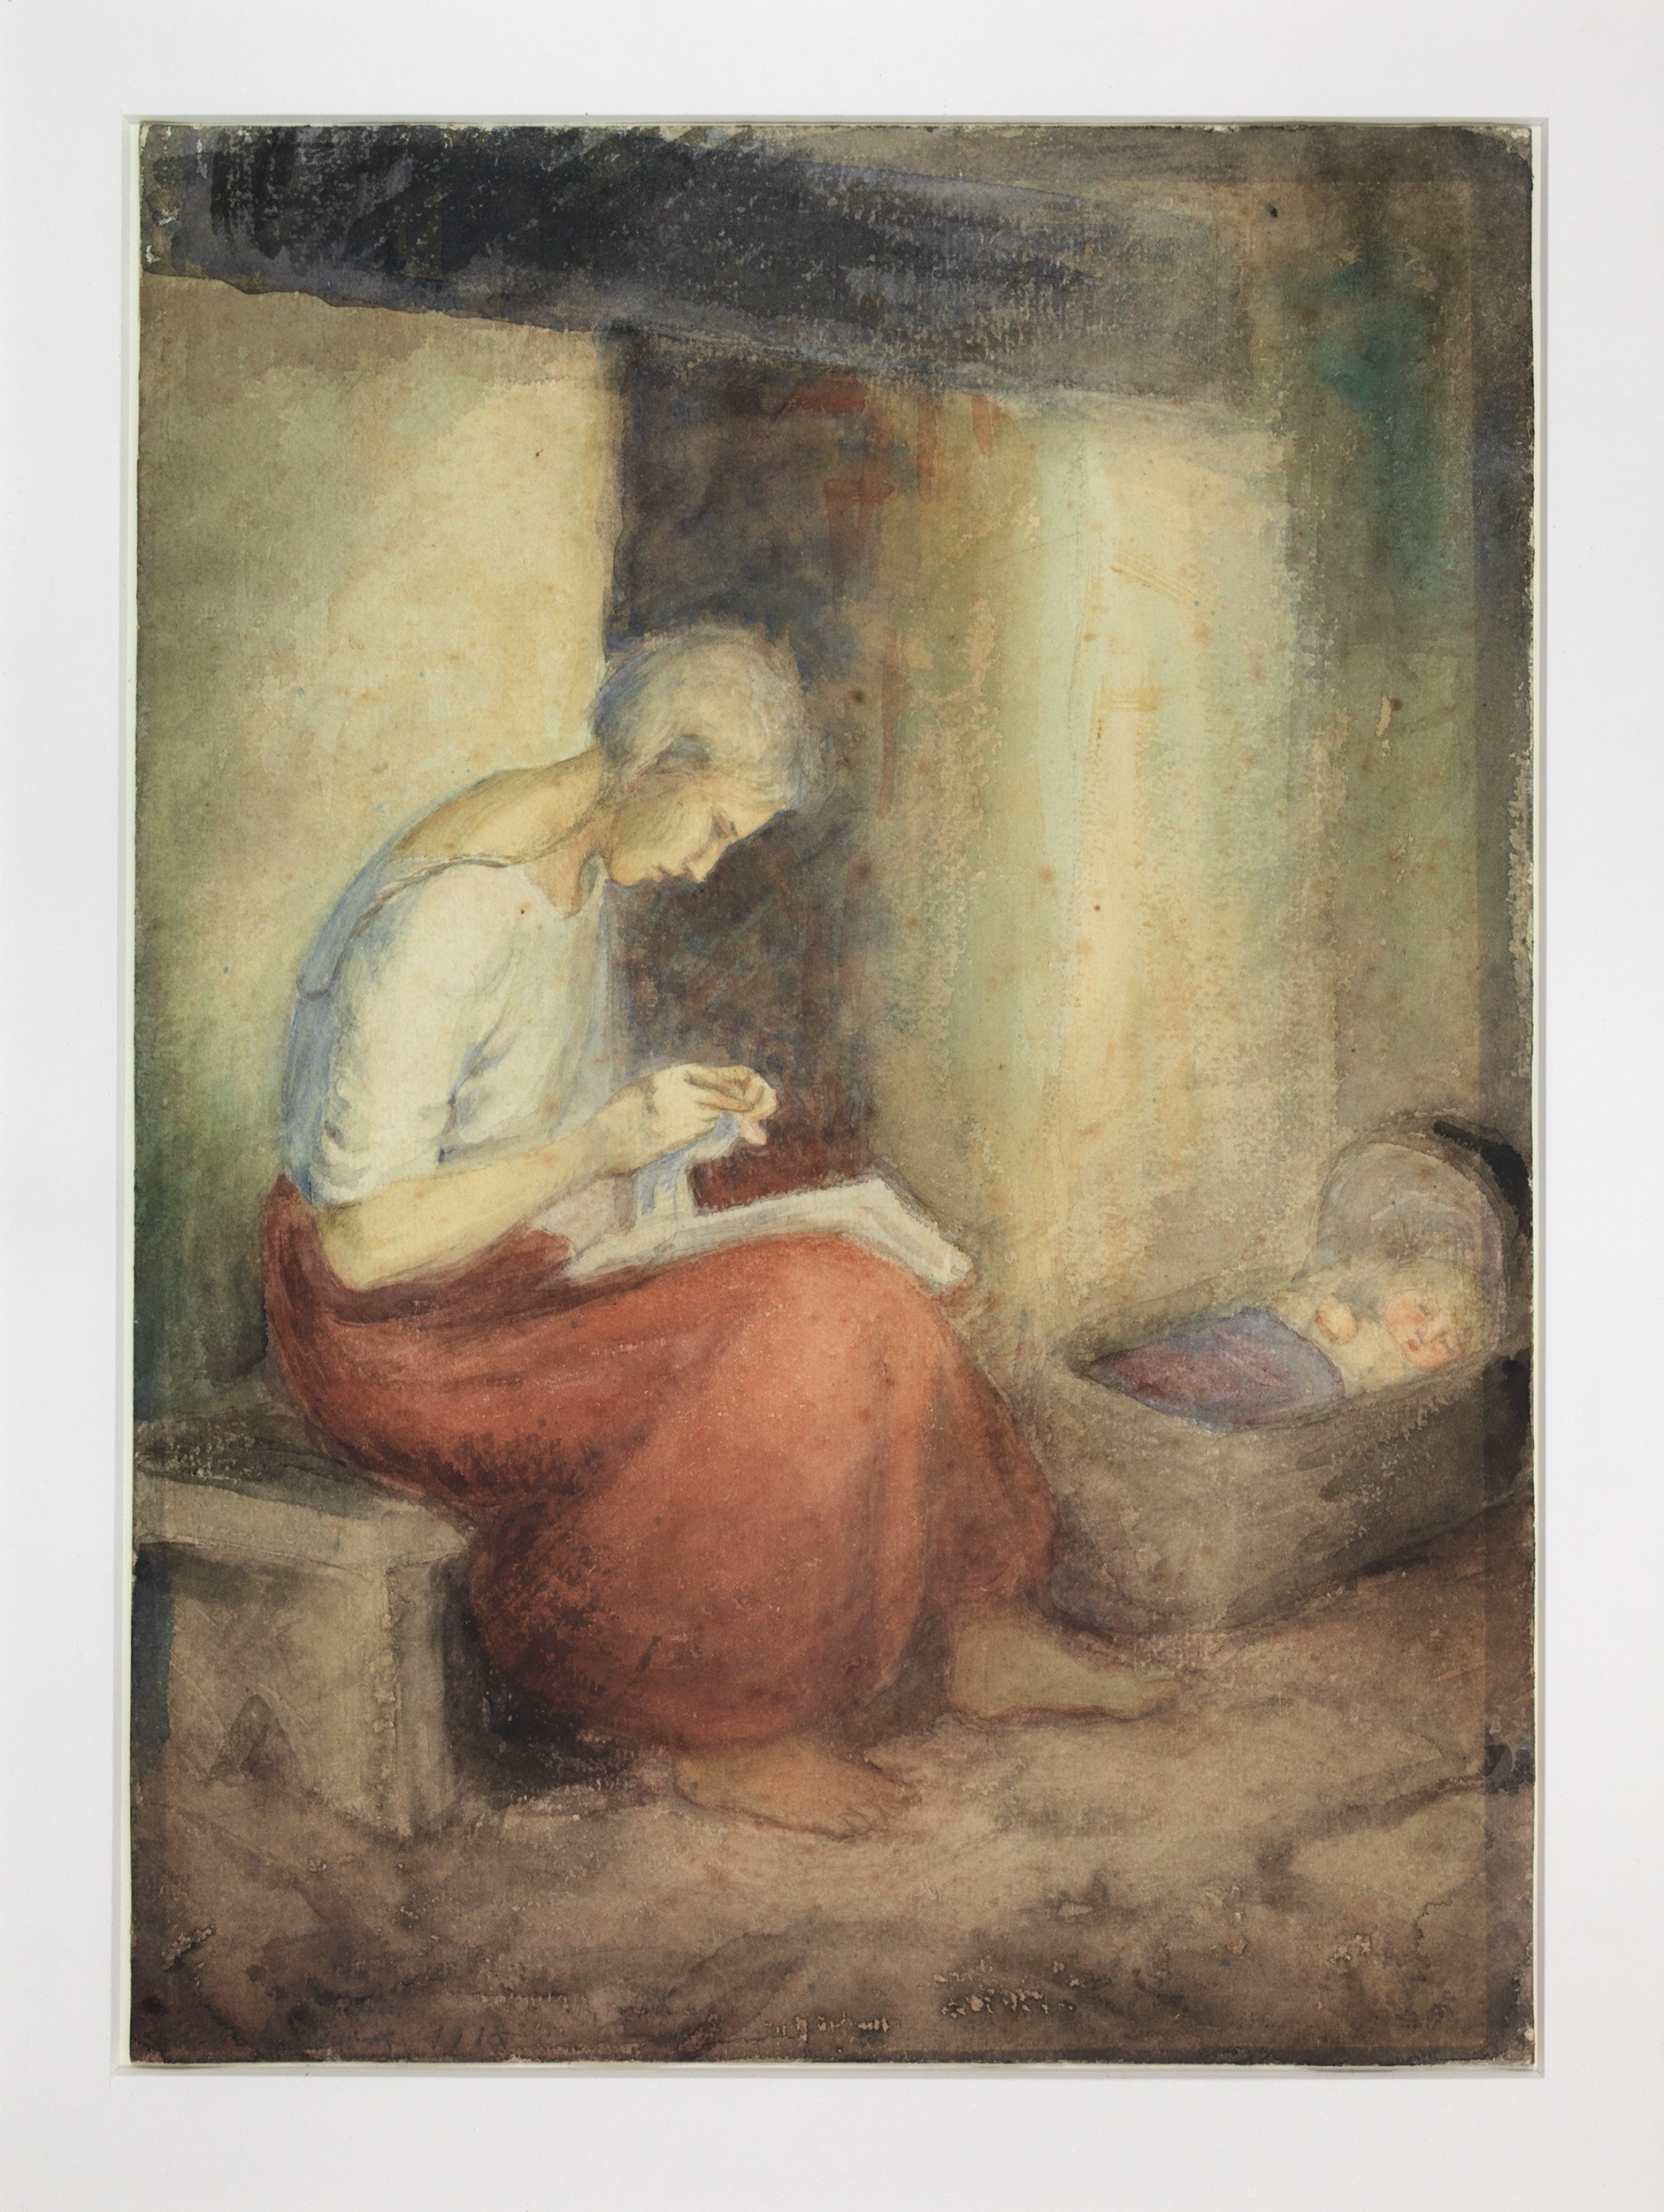 Peasant Woman Sewing, Child in Cradle Beside Hearth